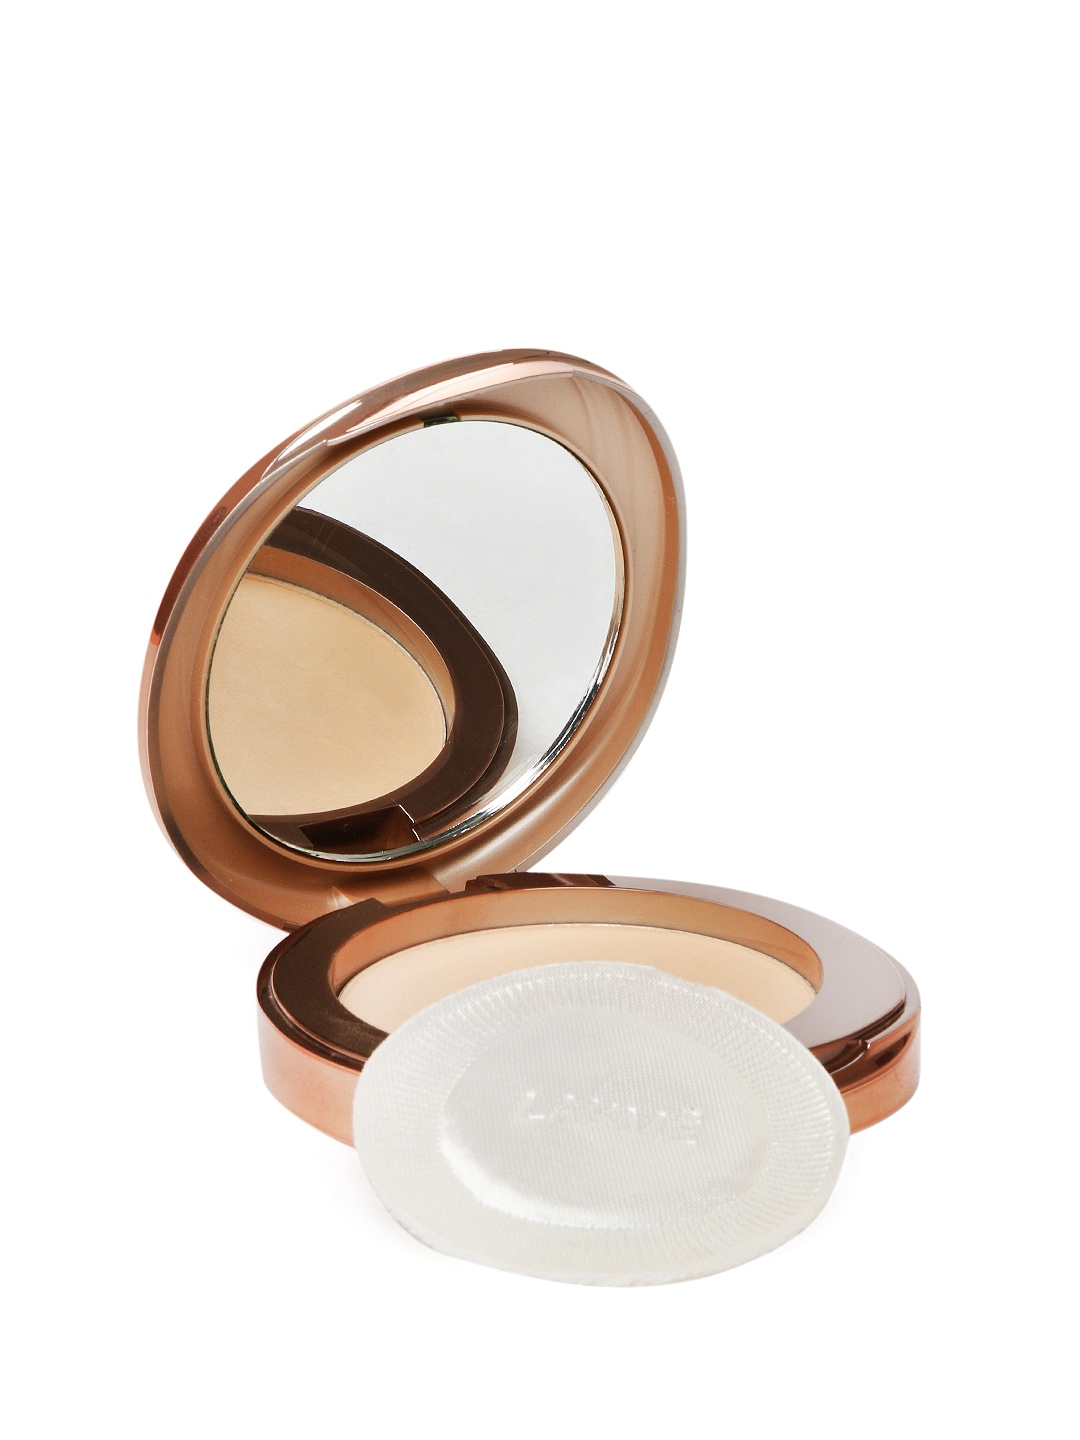 Lakme 9to5 Flawless Matte Complexion Apricot Compact image